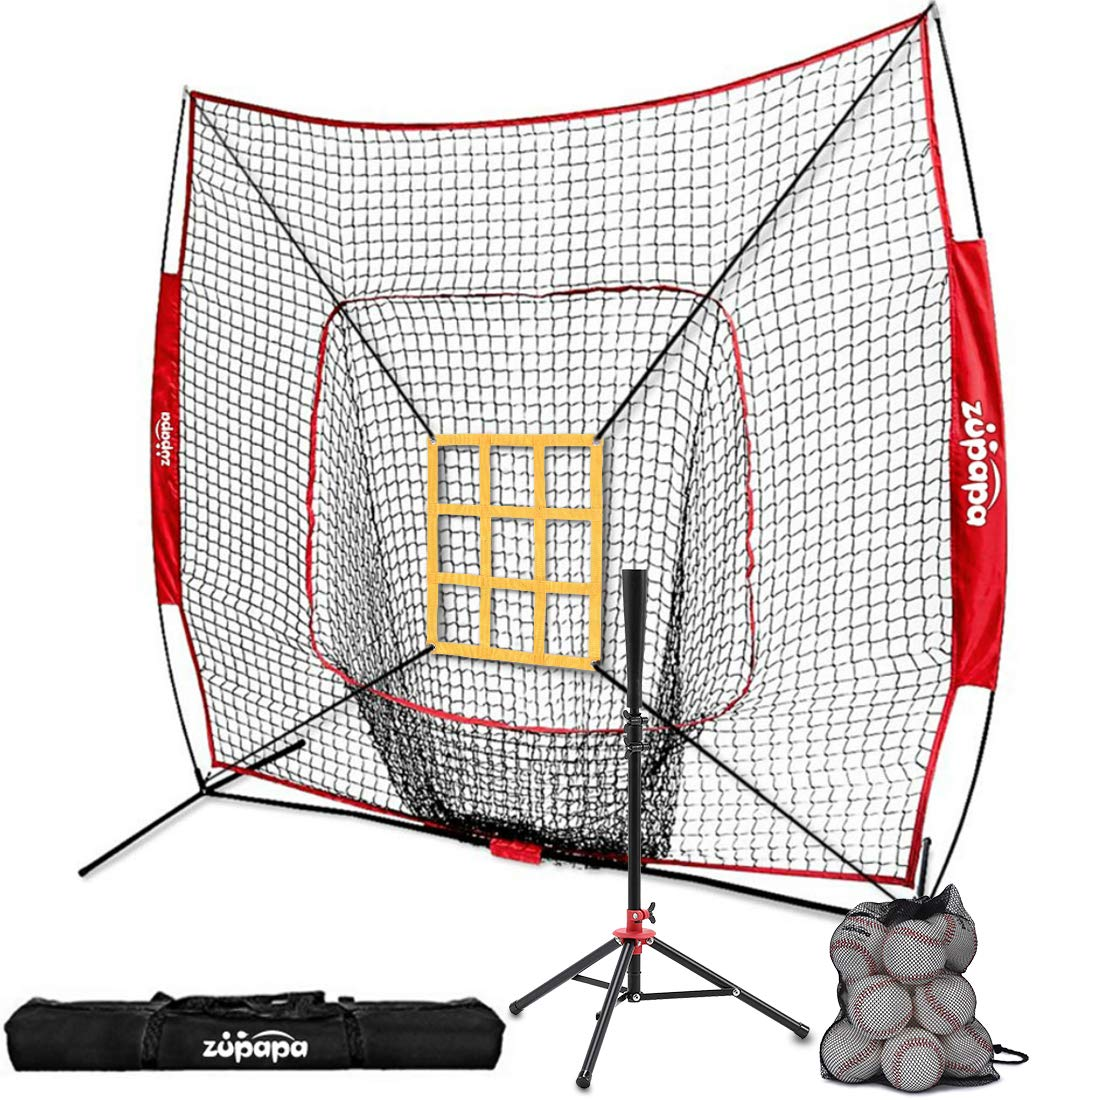 Zupapa 12 Pack Baseballs & Tee & 7x7 Feet Baseball Softball Hitting Pitching Net Practice Set, Upgraded Vivid Strike Zone, Practice Hitting, Pitching, Batting and Catching for All Ages by Zupapa